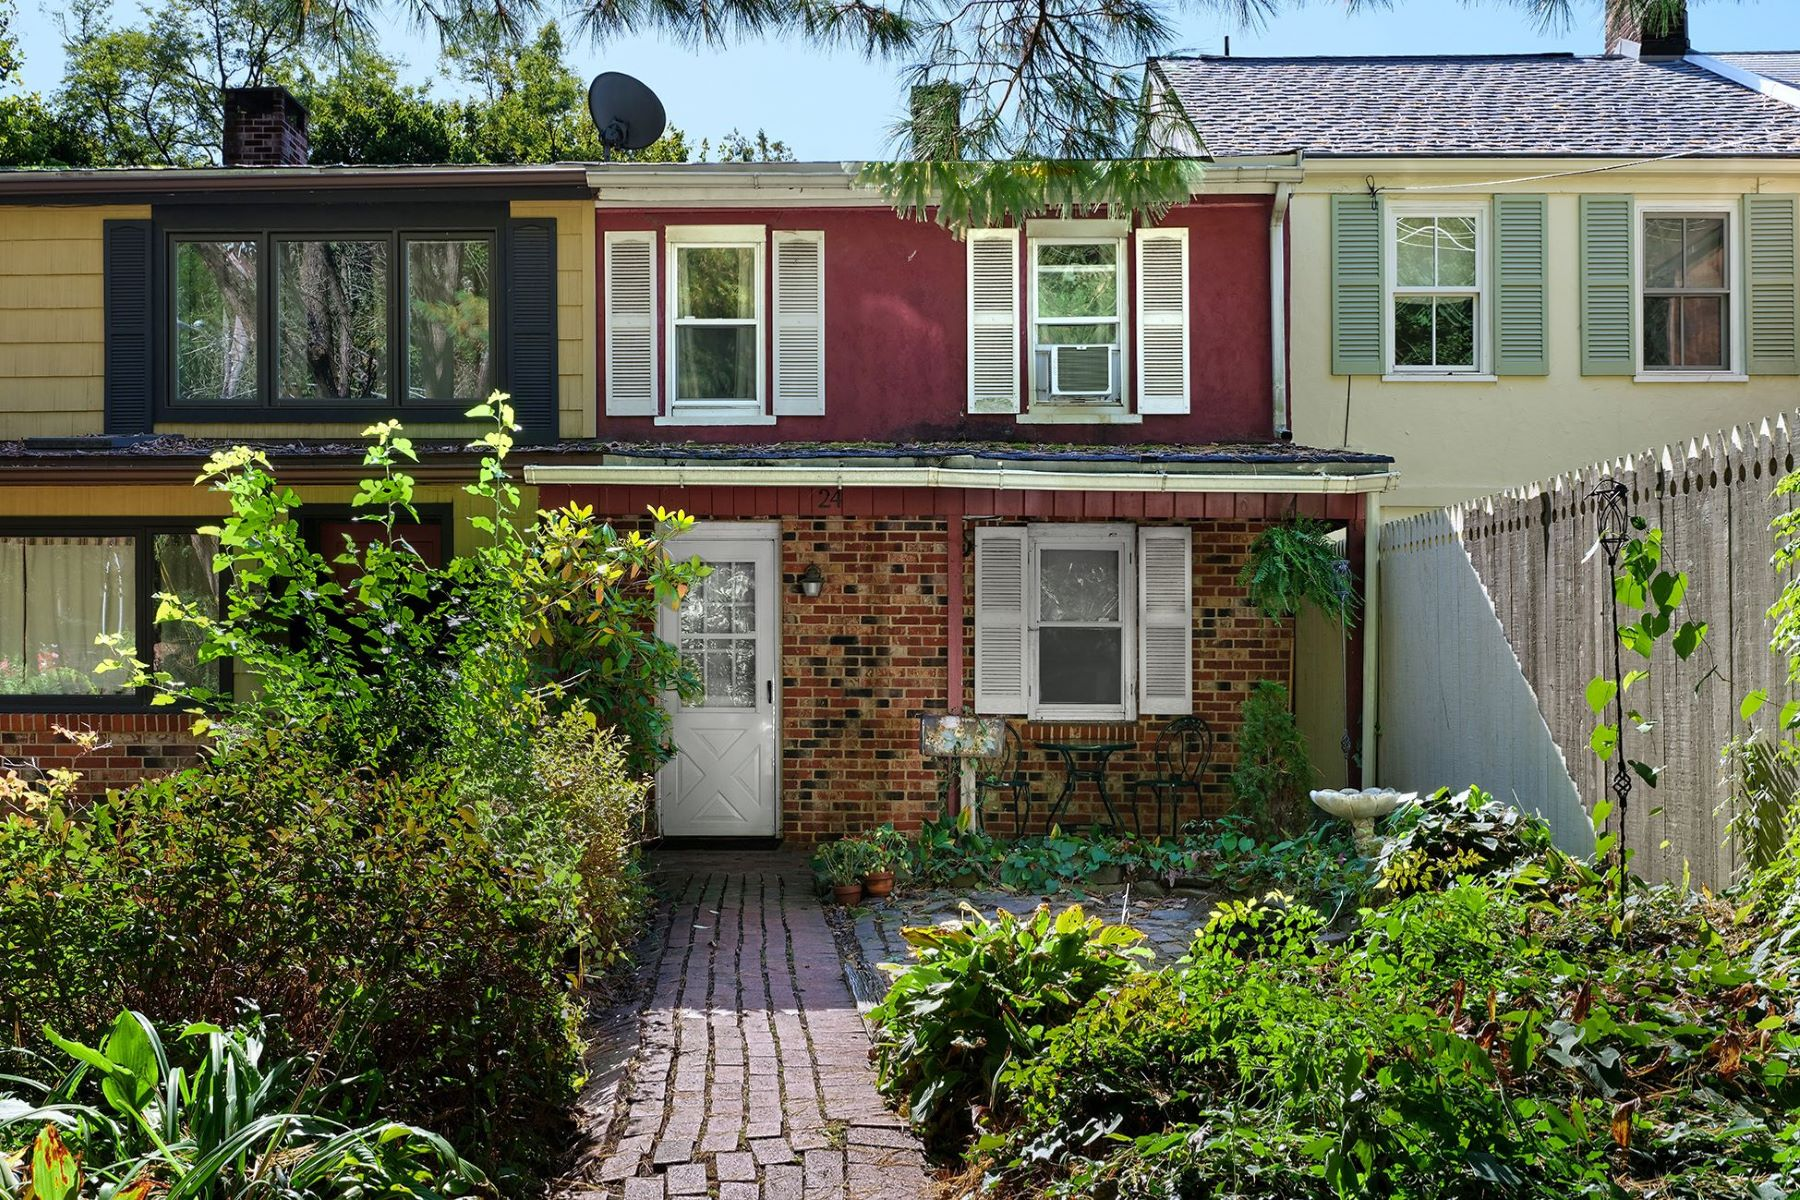 Single Family Homes for Sale at A Cozy Intown Weekend Retreat or Starter Home 24 Brunswick Avenue, Lambertville, New Jersey 08530 United States